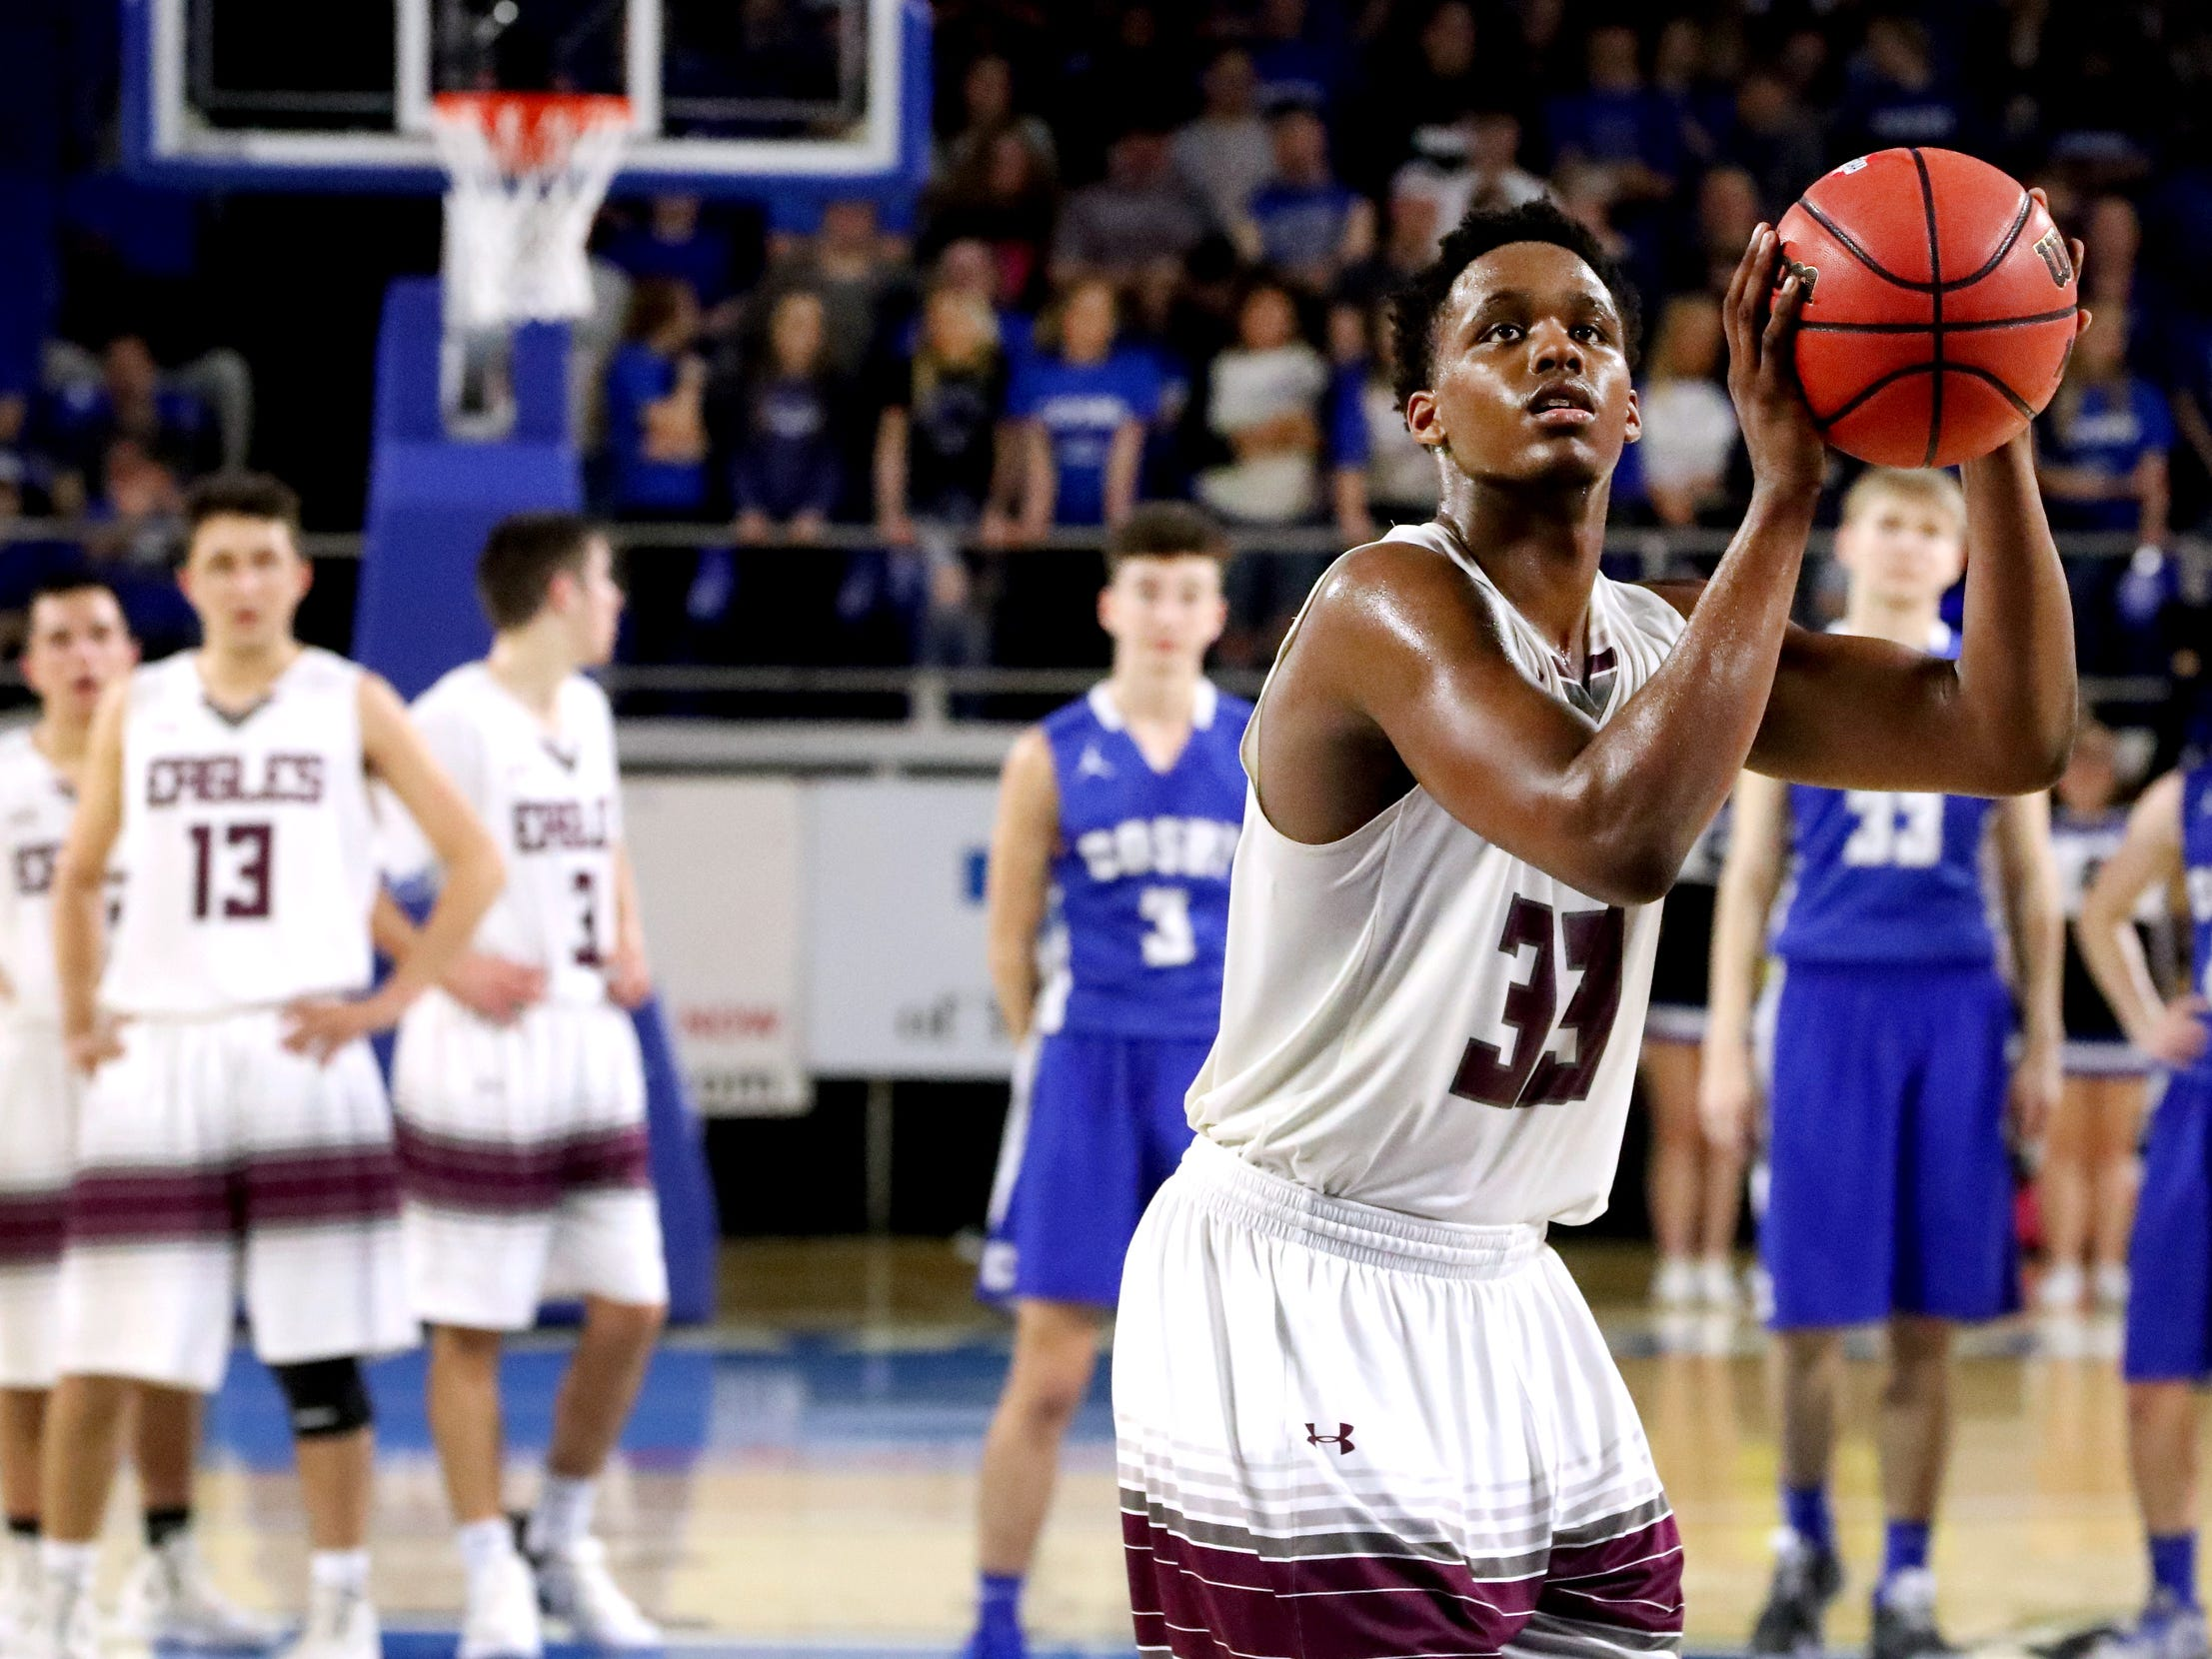 Eagleville's Demarious Stoudemire (33) shoots a free throw after after a technical was called on Cosby during the quarterfinal round of the TSSAA Class A Boys State Tournament, on Thursday, March 14, 2019, at Murphy Center in Murfreesboro, Tenn.